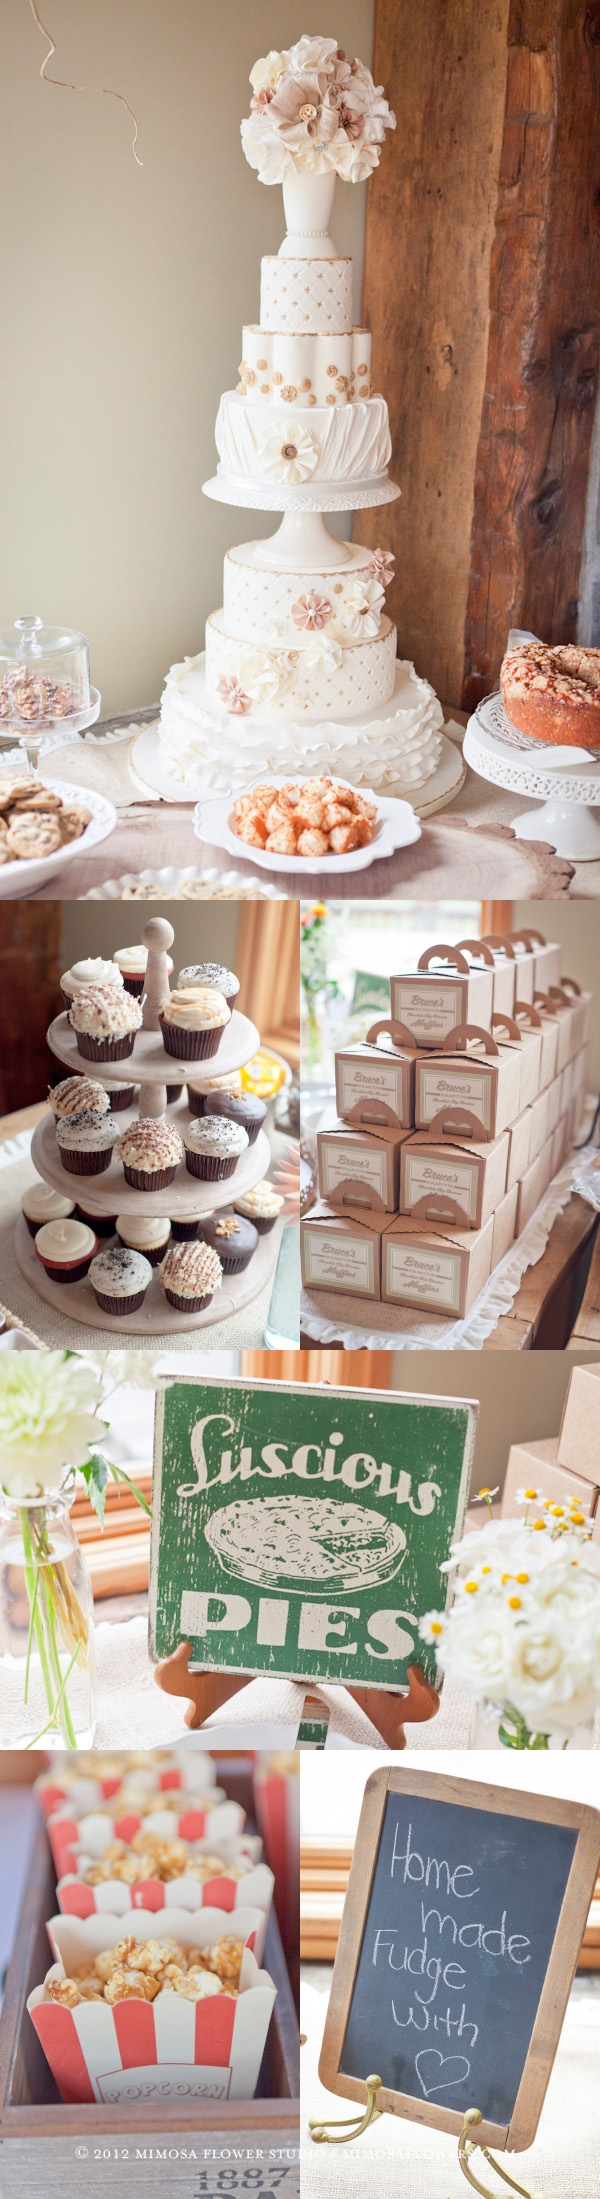 Wedding Reception at Knollwood Golf Course - Sweets Table